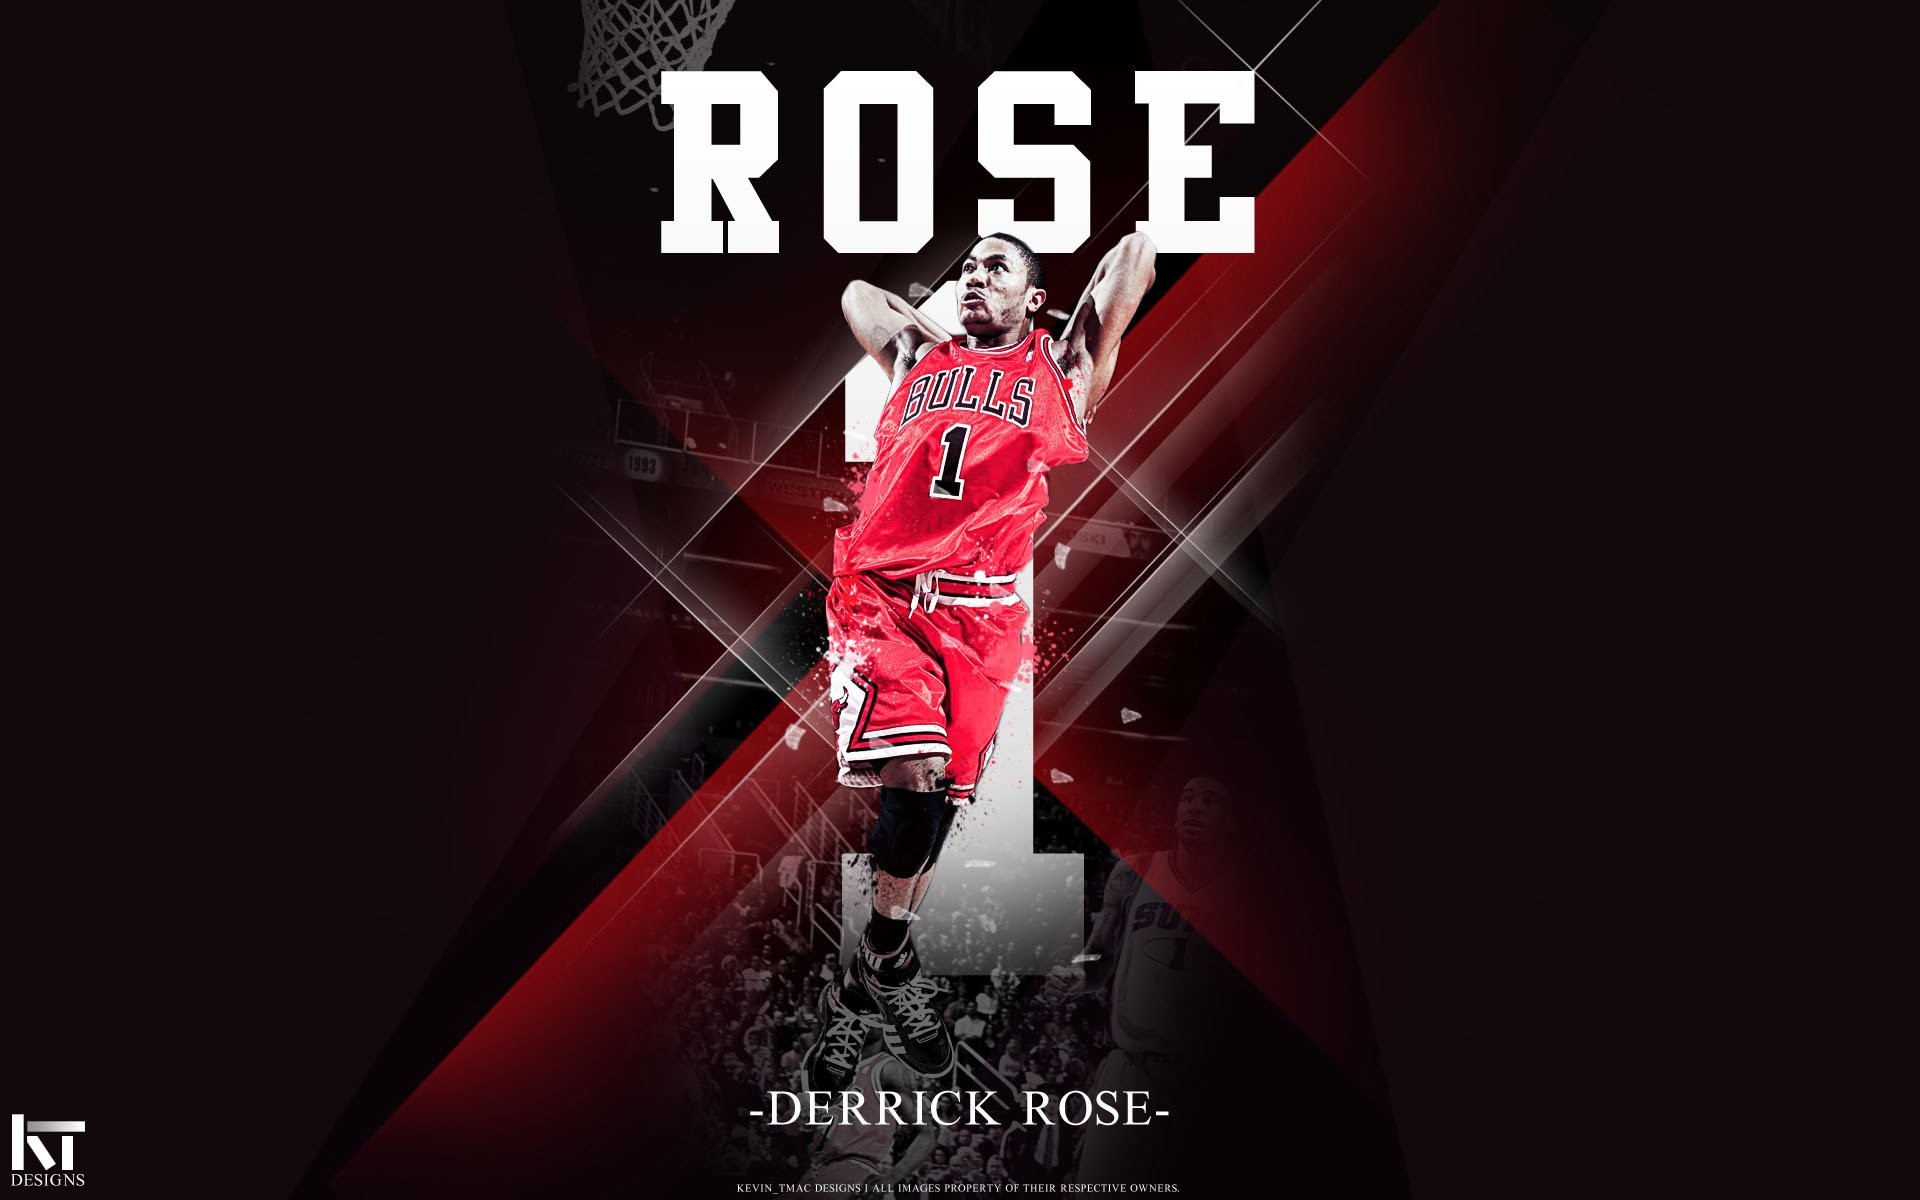 Derrick rose wallpaper hd 2018 60 images 1920x1080 derrick rose says he could be better than mvp season was a dumb player nba sporting news voltagebd Image collections